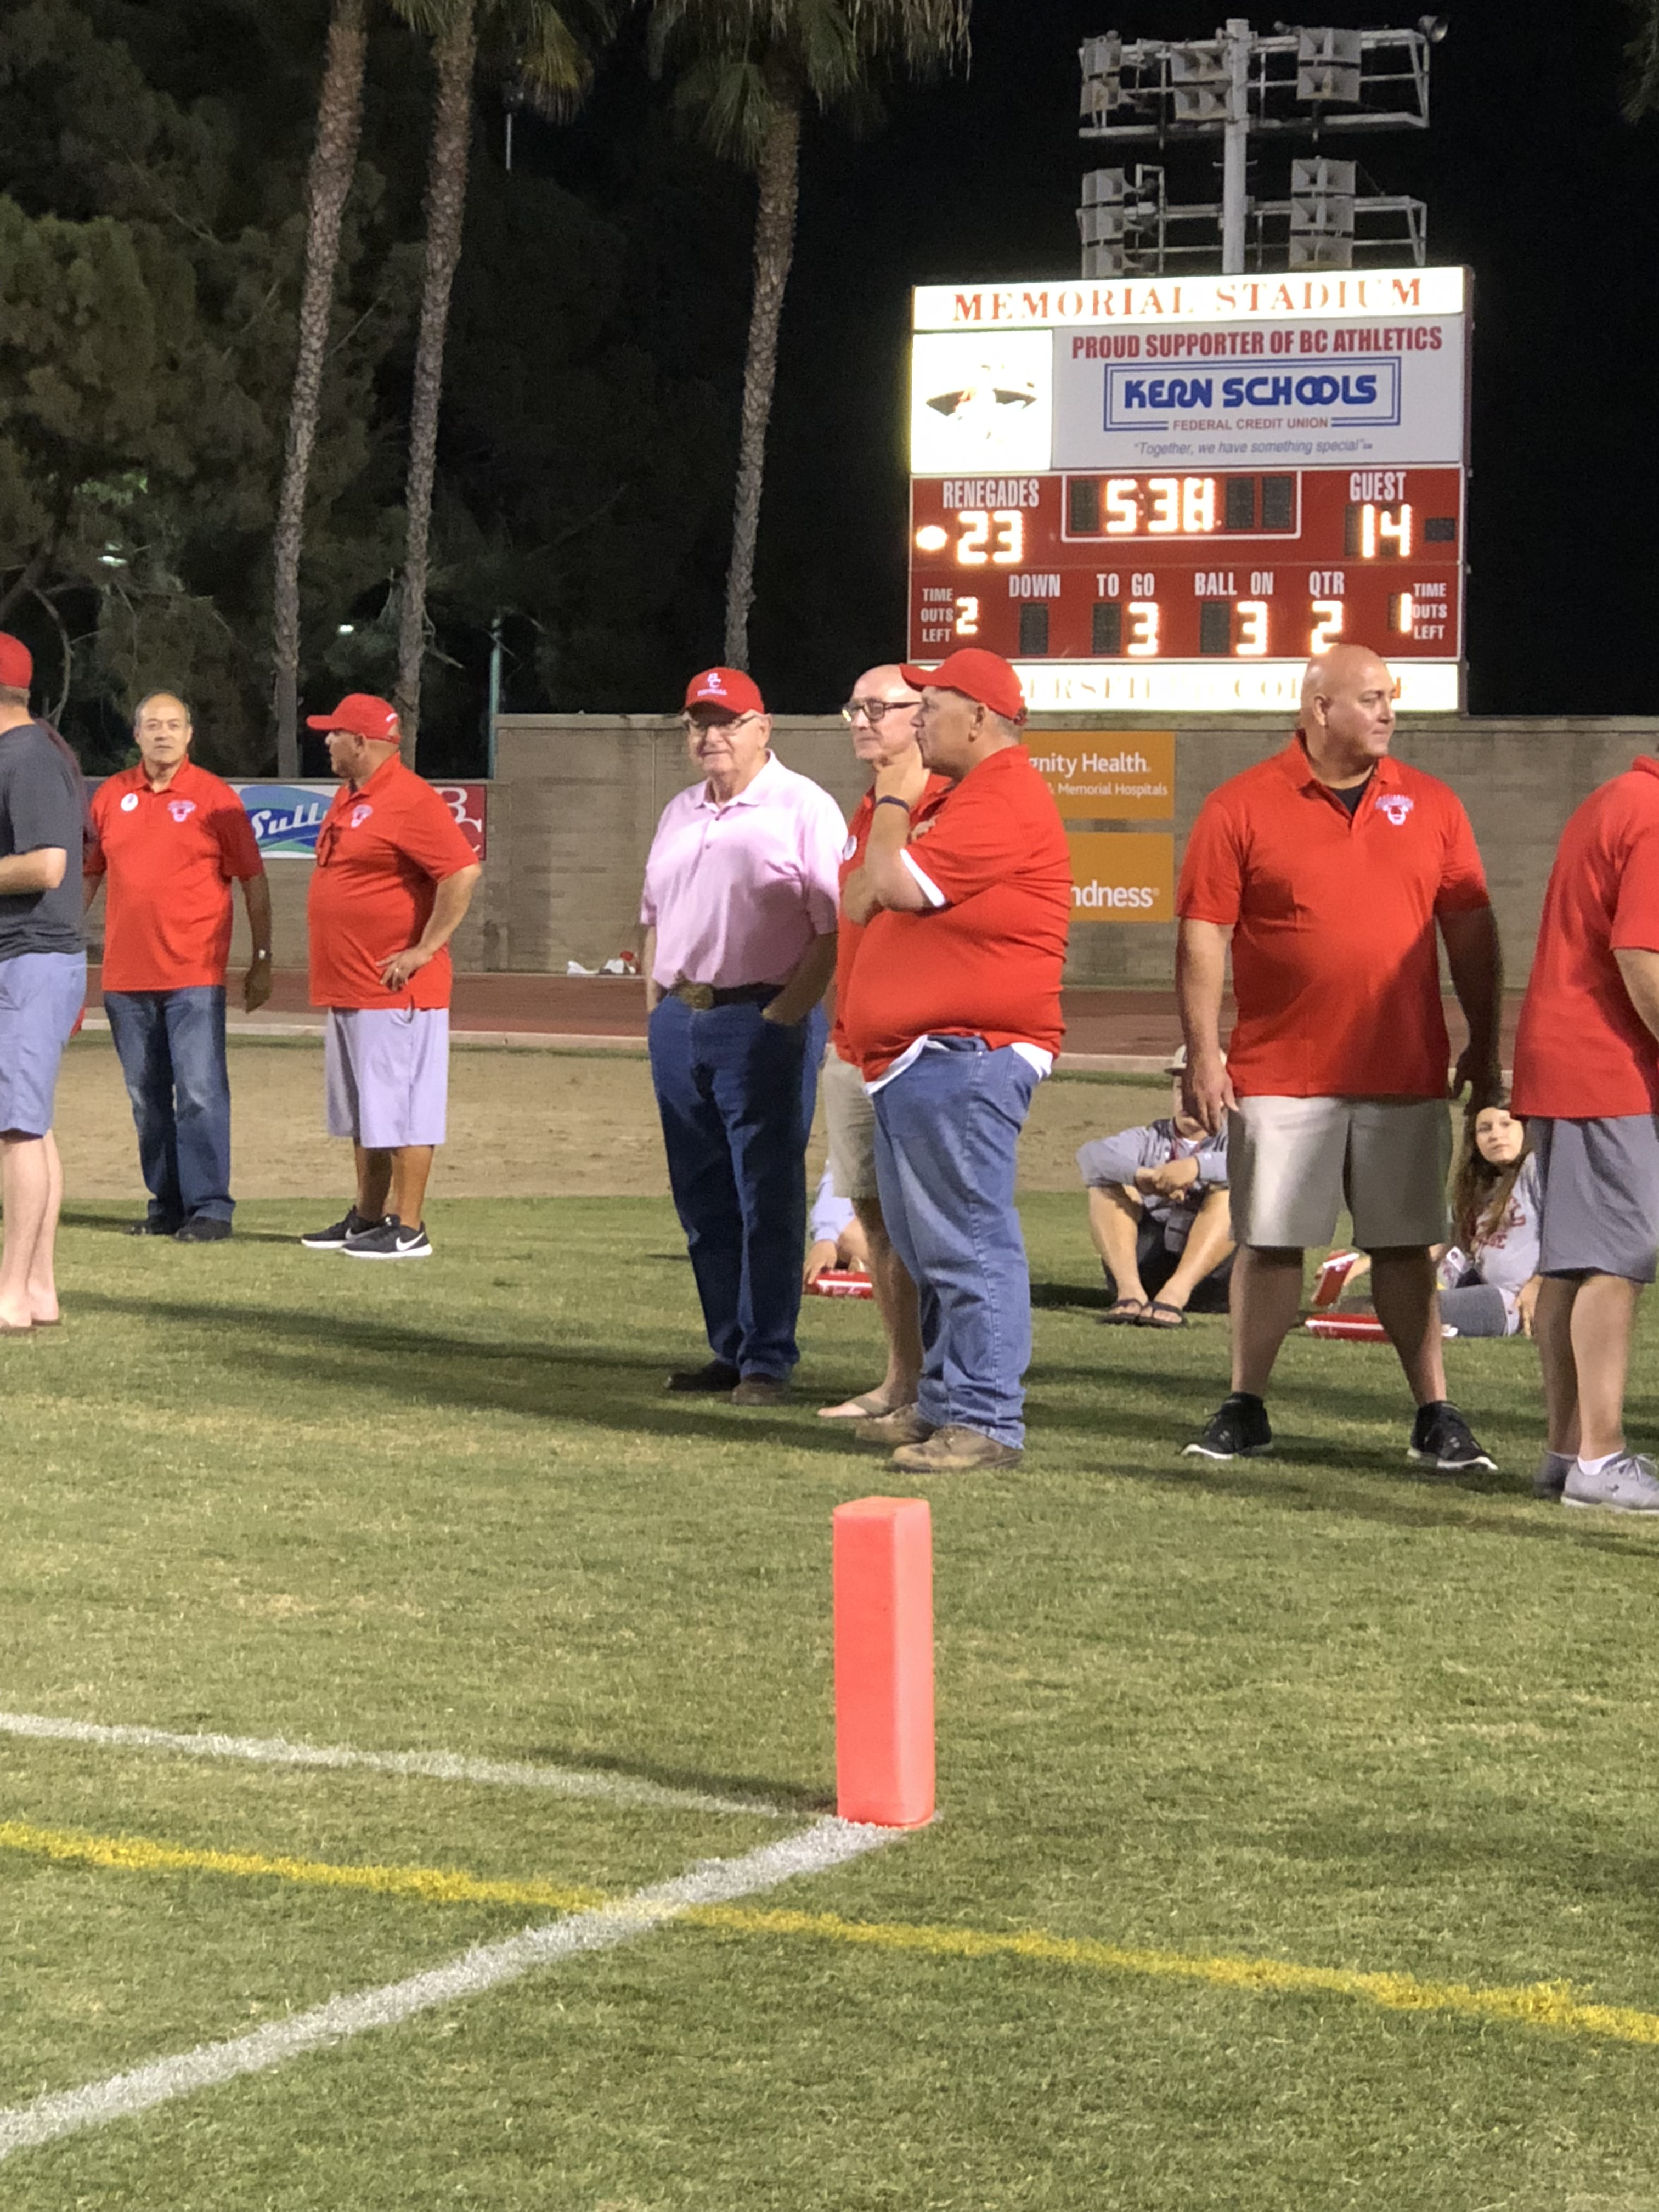 Frank on the sidelines with staff and coaches